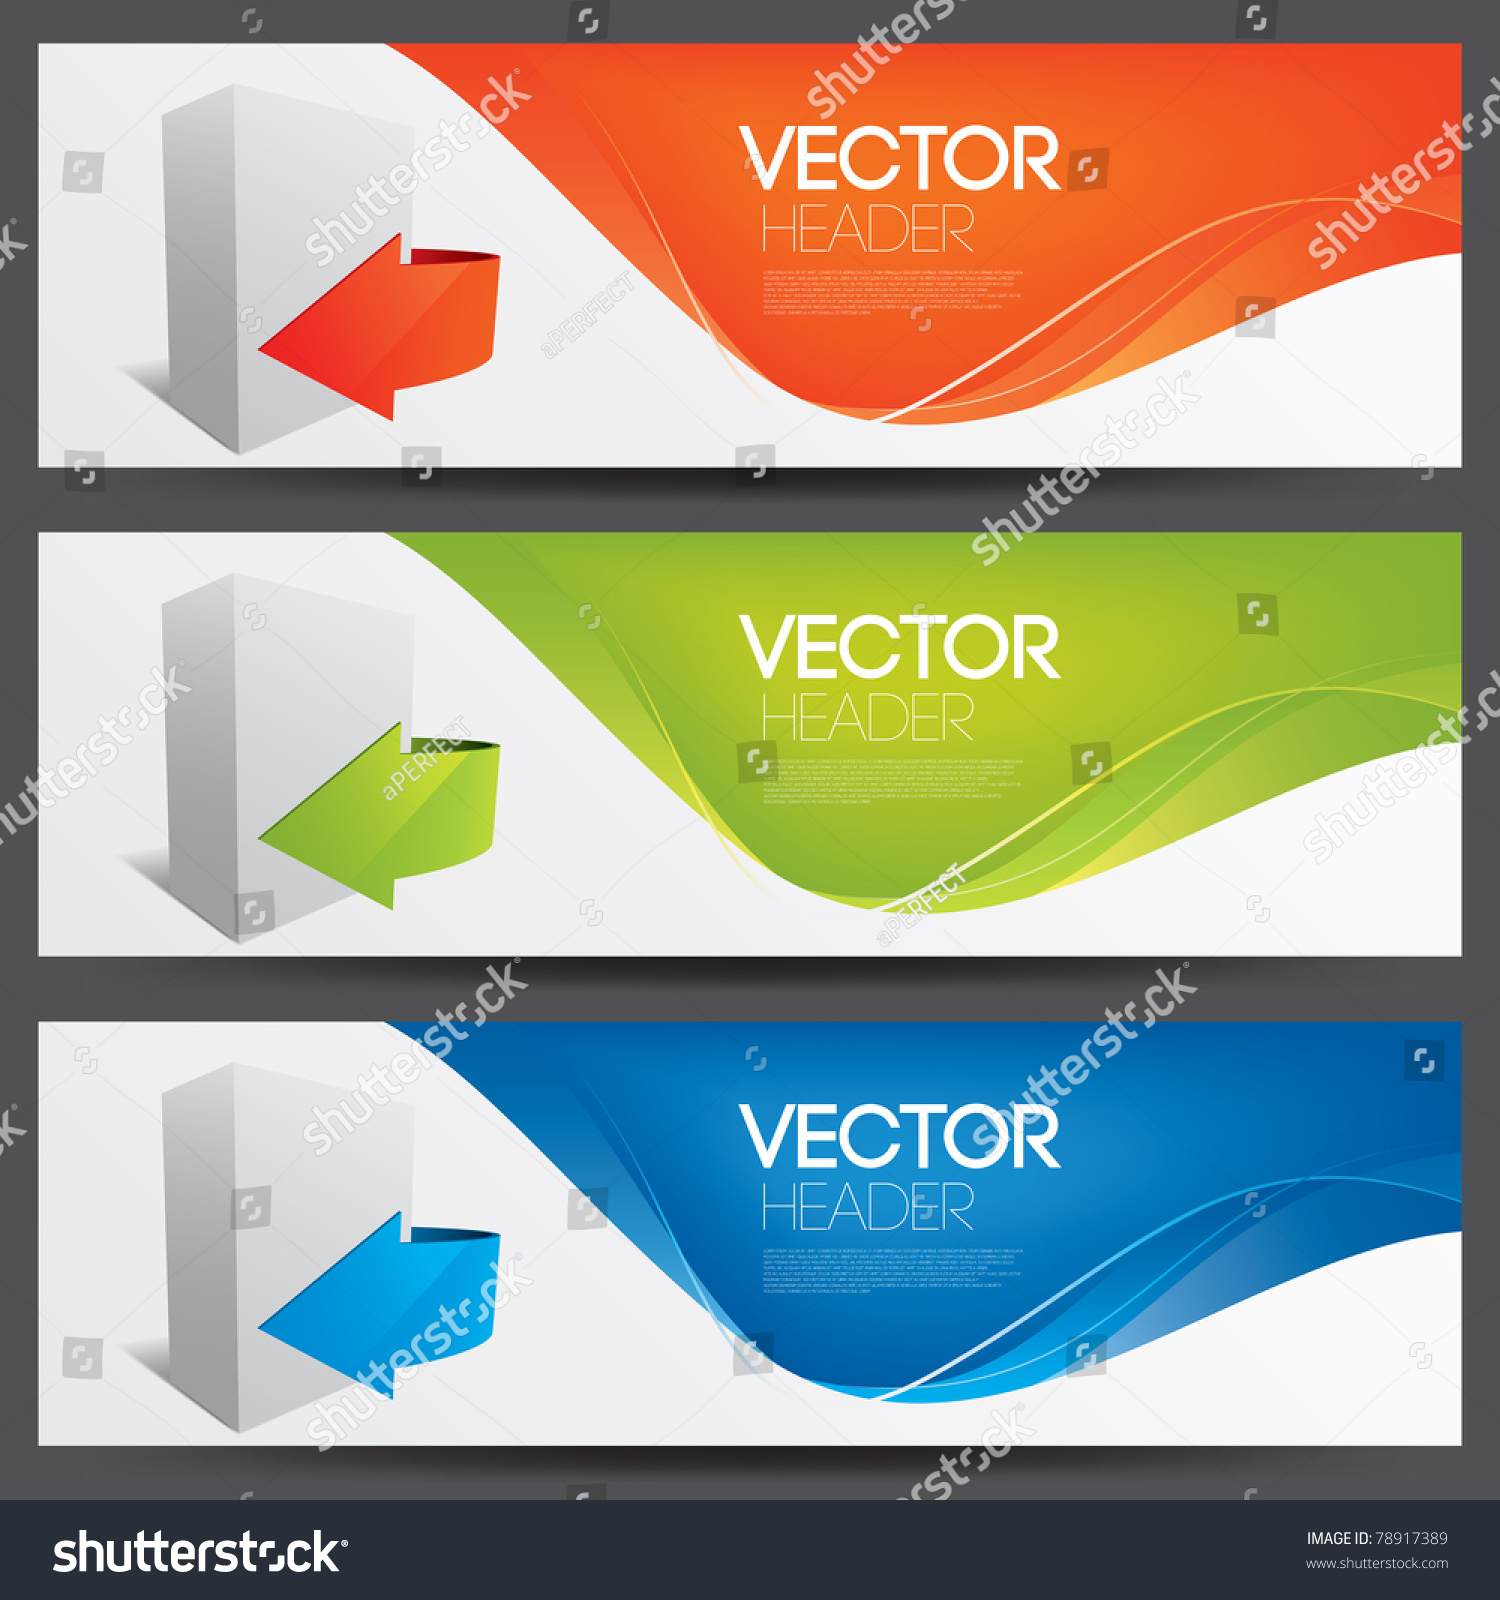 Vector website headers for software products 78917389 Vector image software